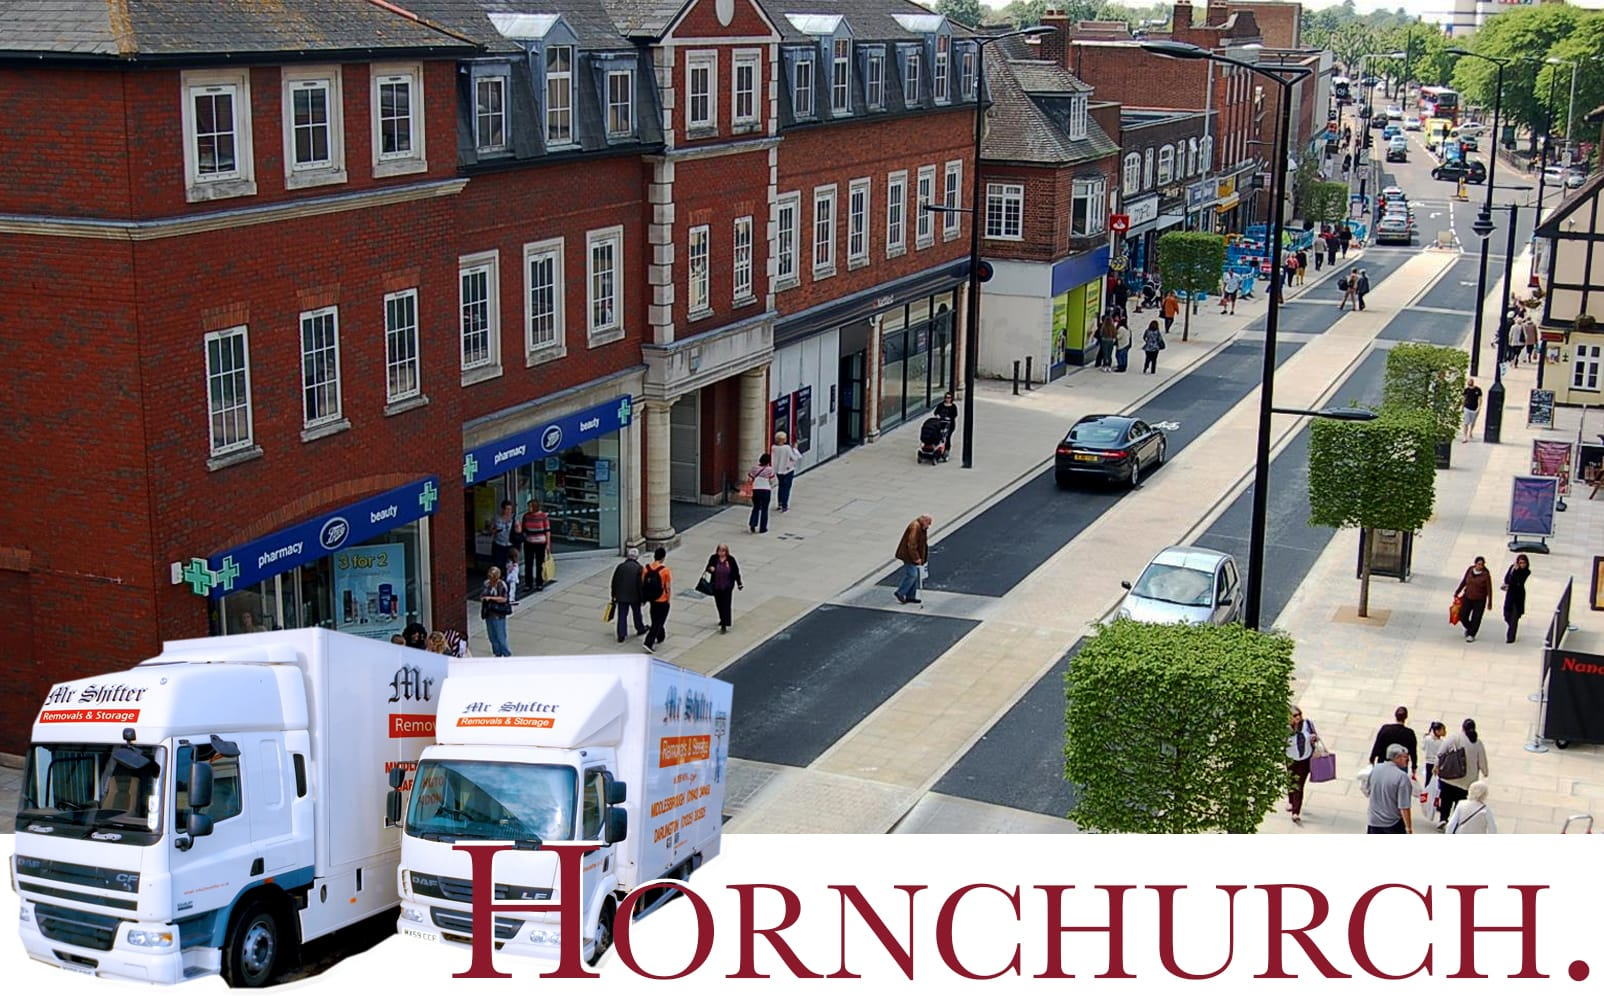 Mr Shifter London Removals Hornchurch Rm12